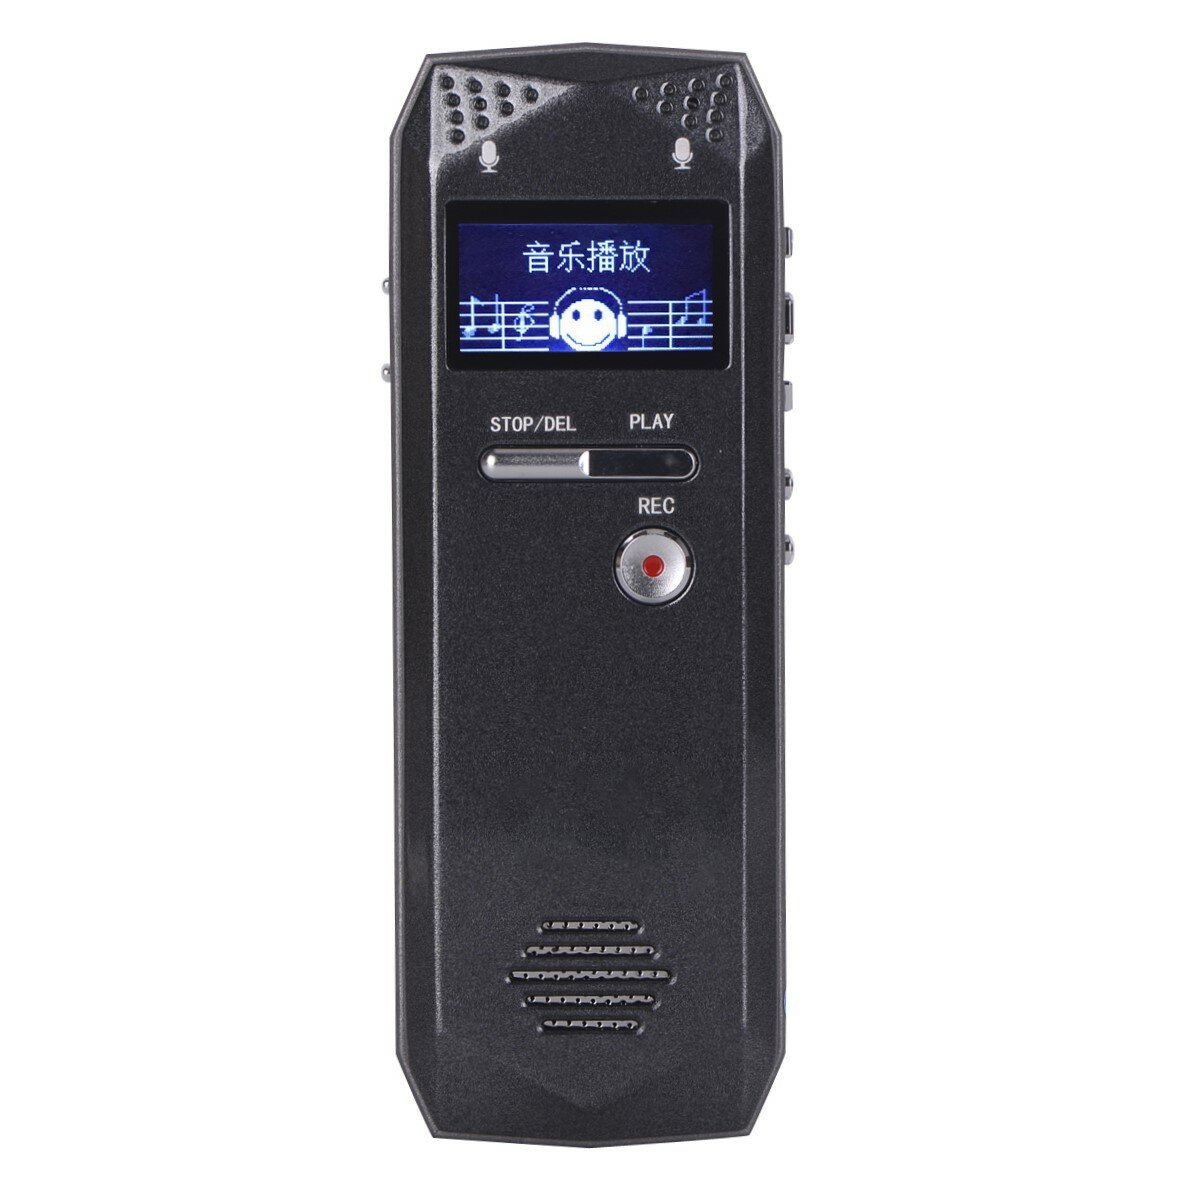 8GB 16GB 32GB Rechargeable Voice Recorder Pen MP3 Player Support TF Card Line In Record